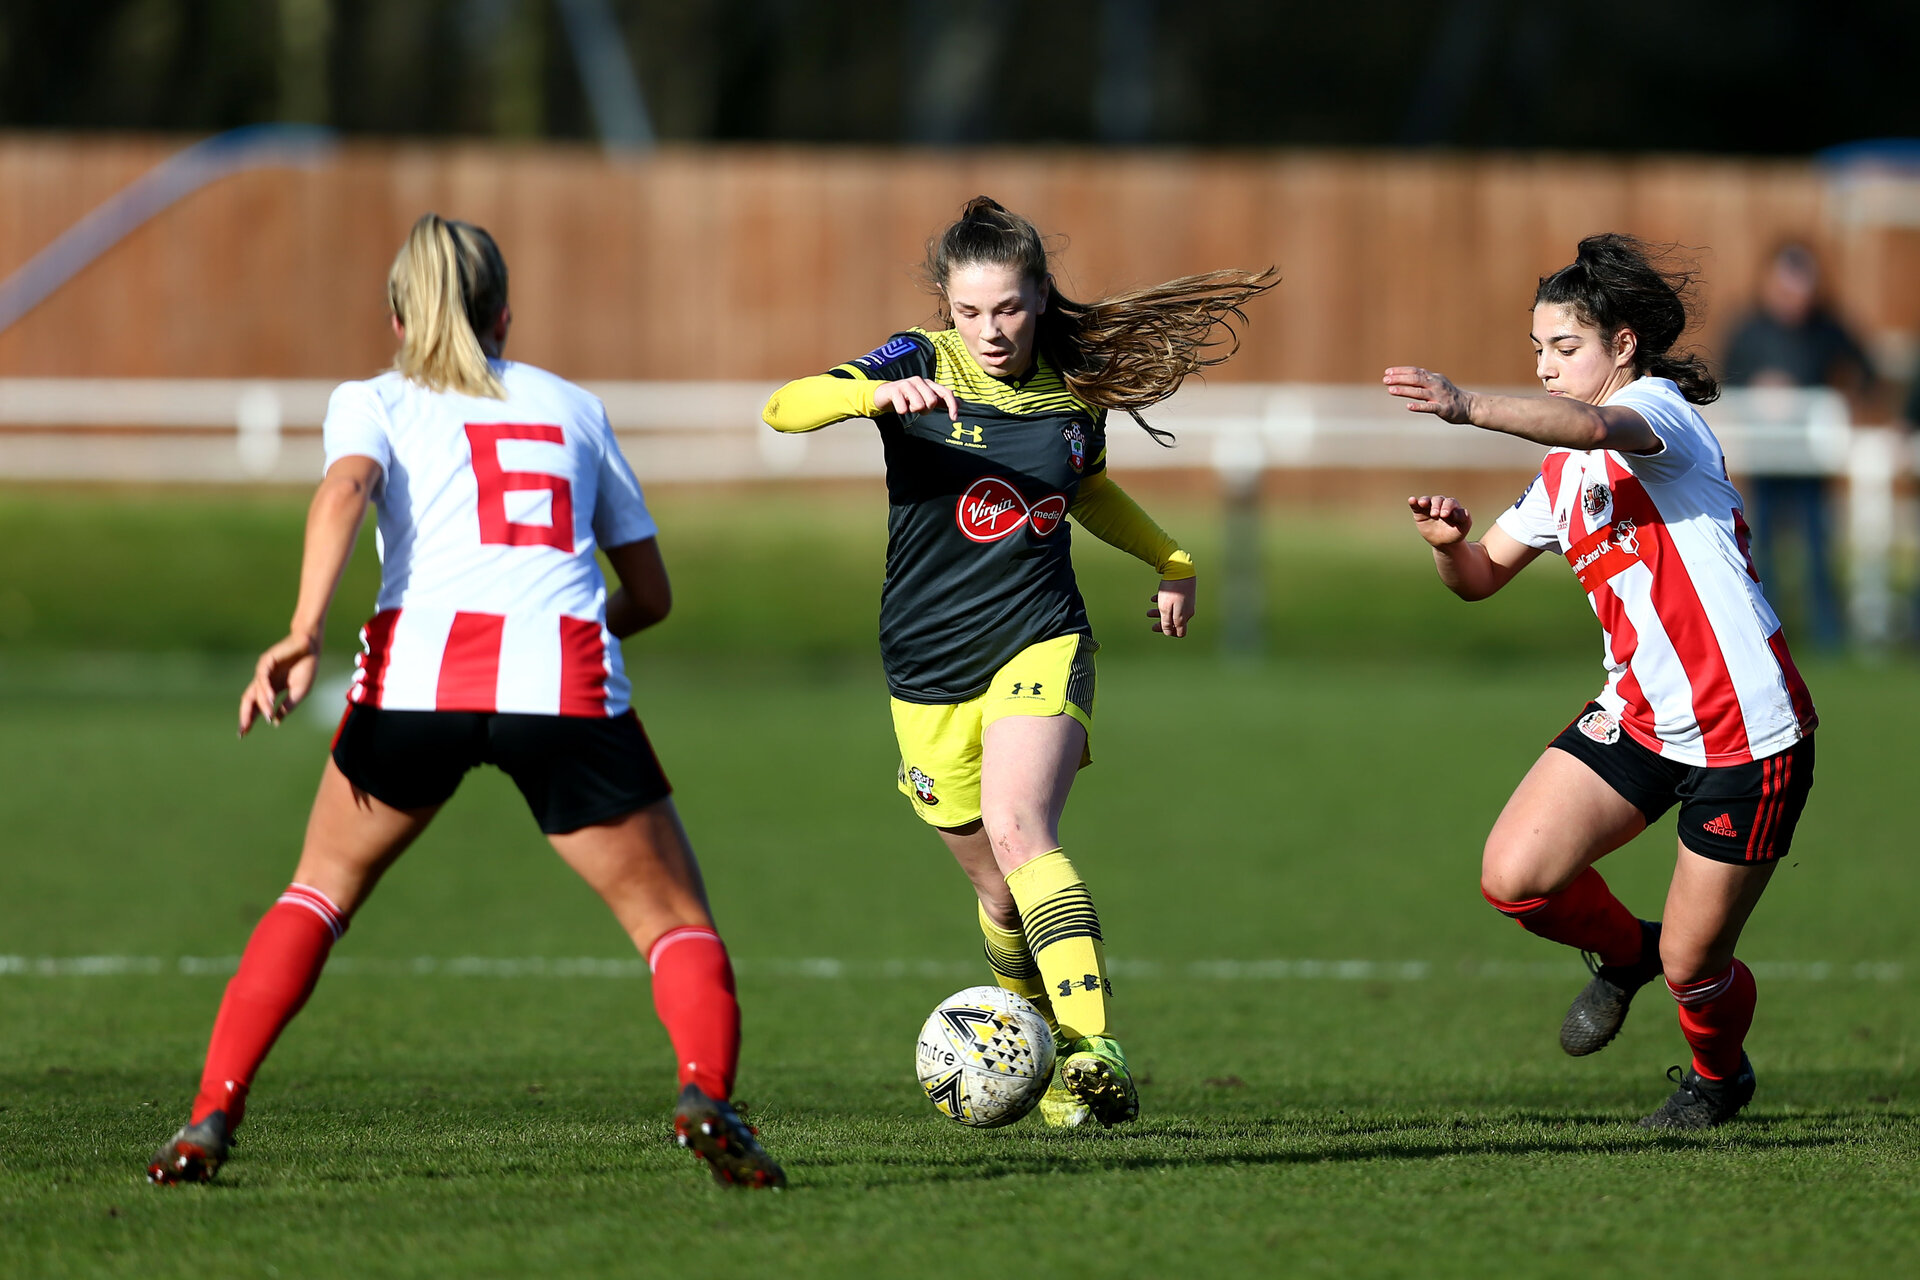 SUNDERLAND, ENGLAND - February 23: during the FAWNL semi-final at The Eppleton Colliery Welfare Ground between Sunderland and Southampton Women on February 23 2020, Sunderland, England. (Photo by Isabelle Field/Southampton FC via Getty Images)